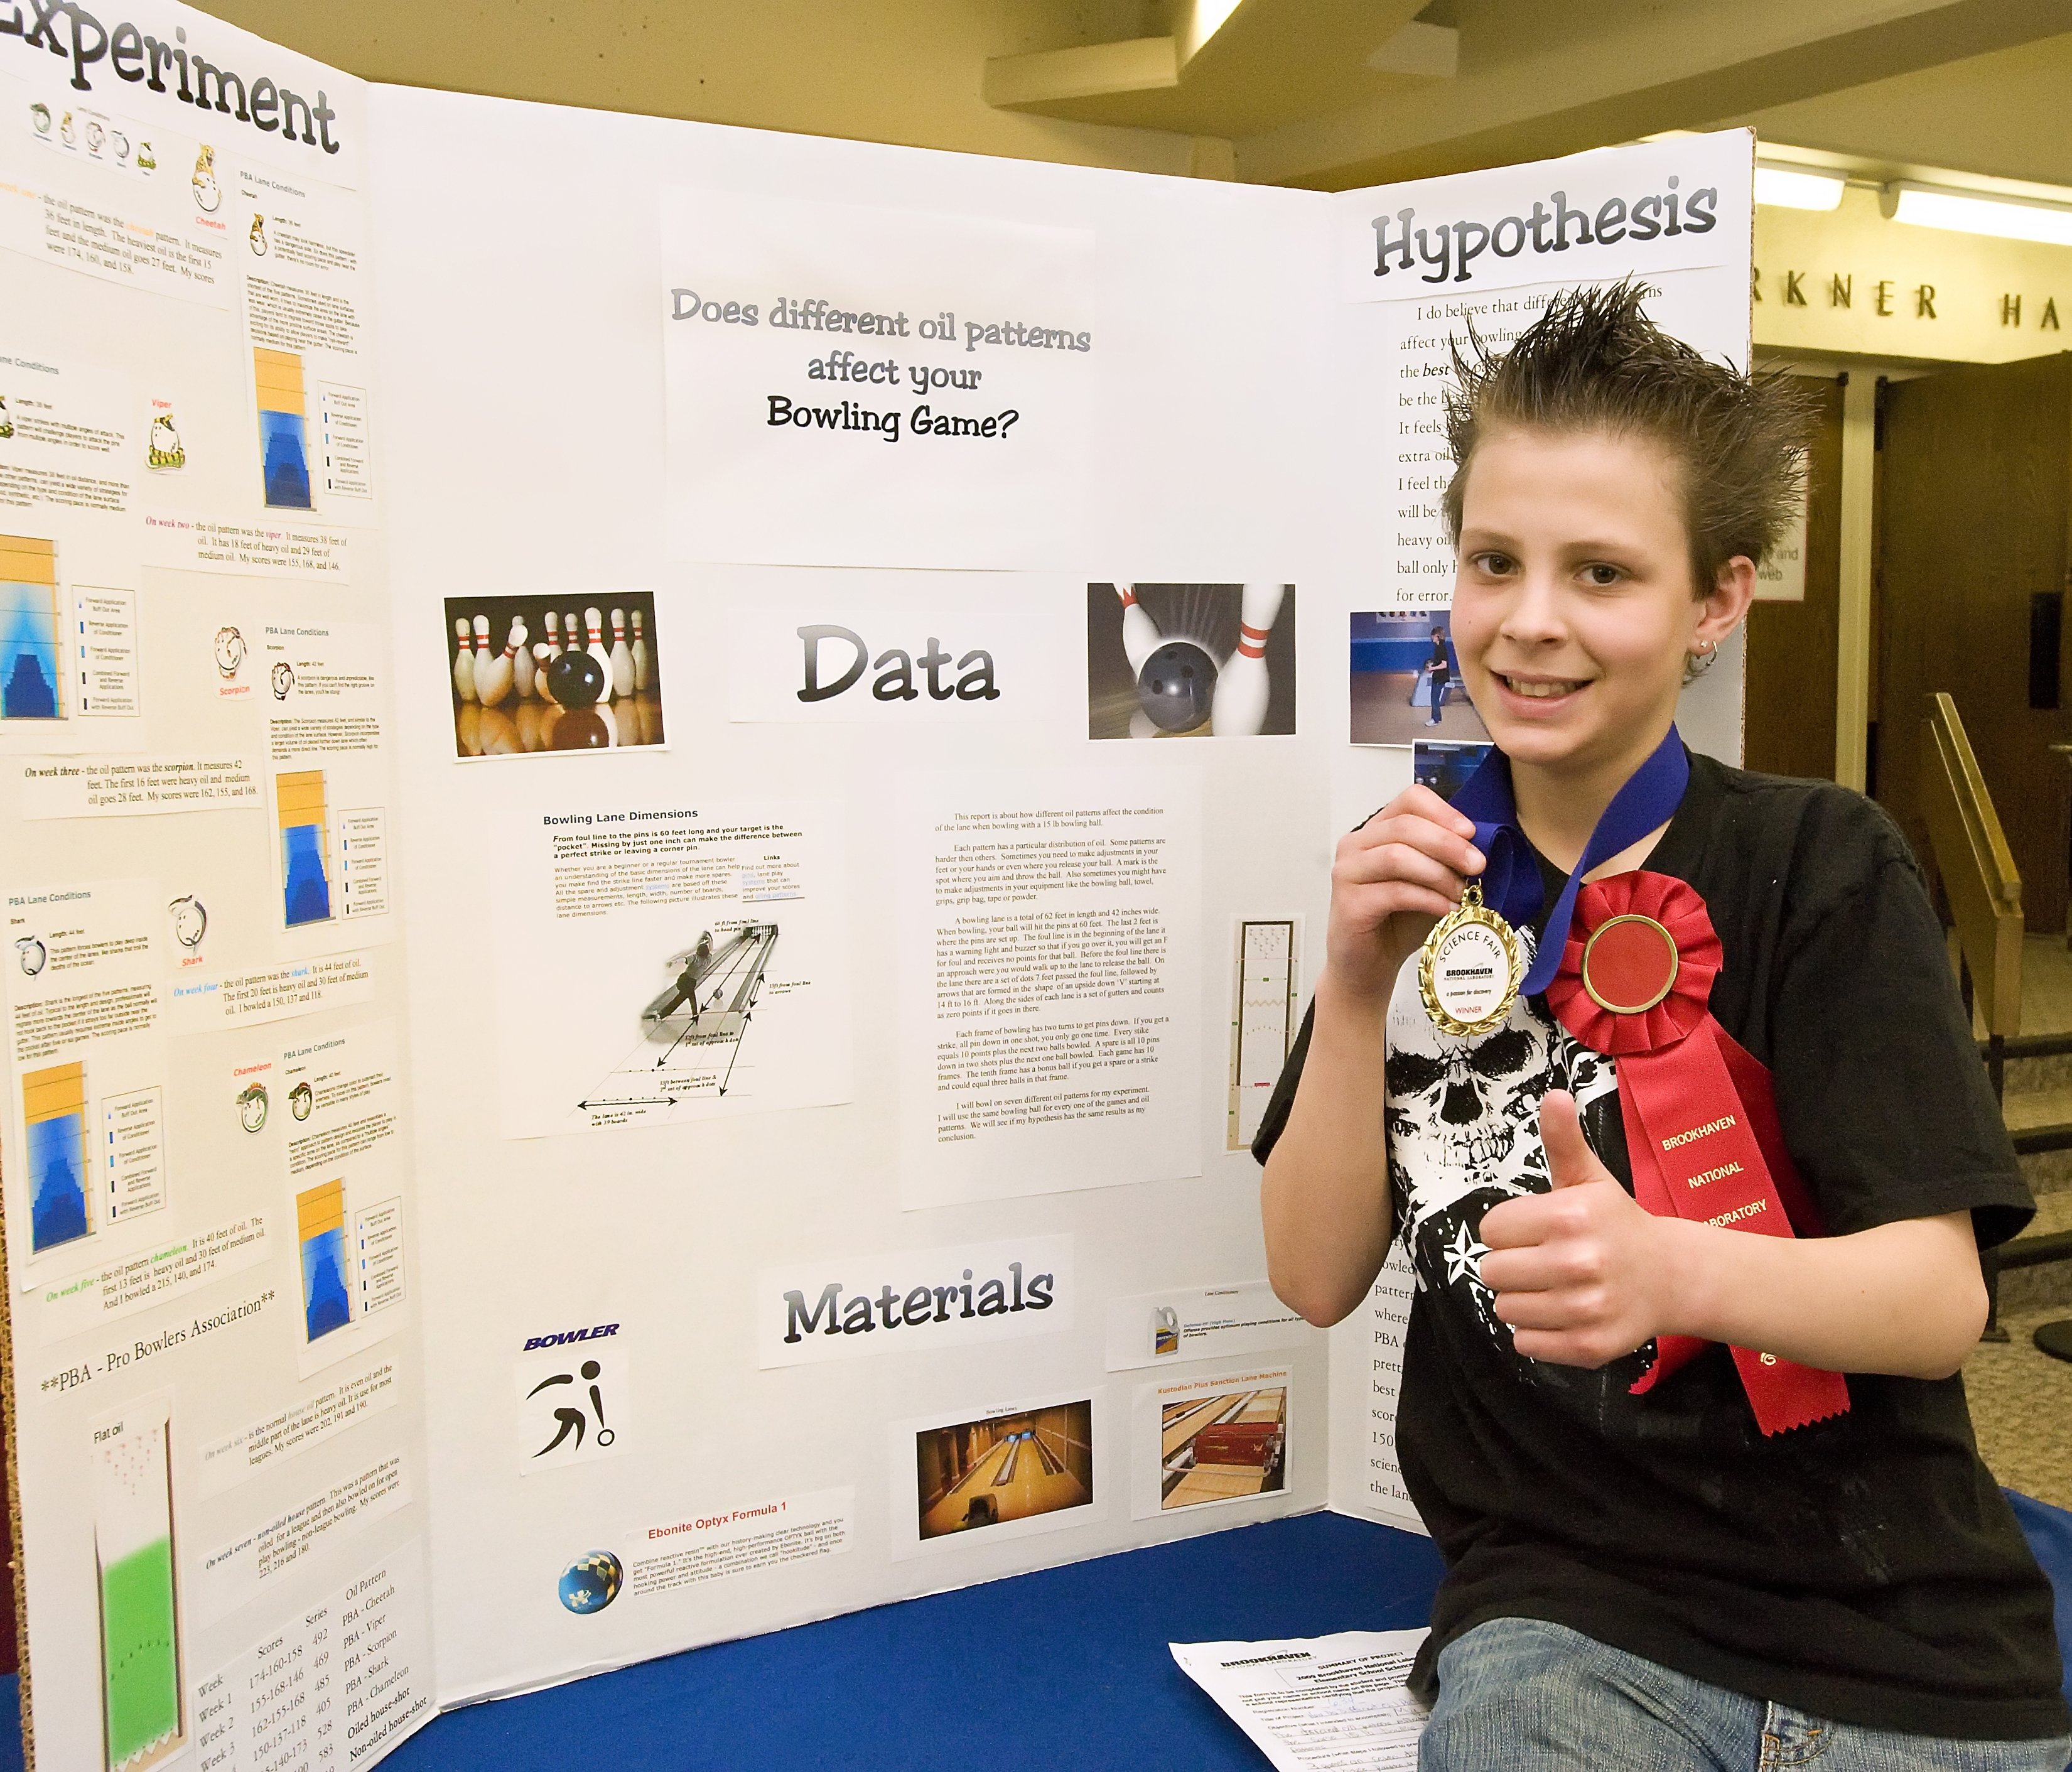 10 Stunning 6 Grade Science Project Ideas www science fair projects custom paper academic writing service 8 2020